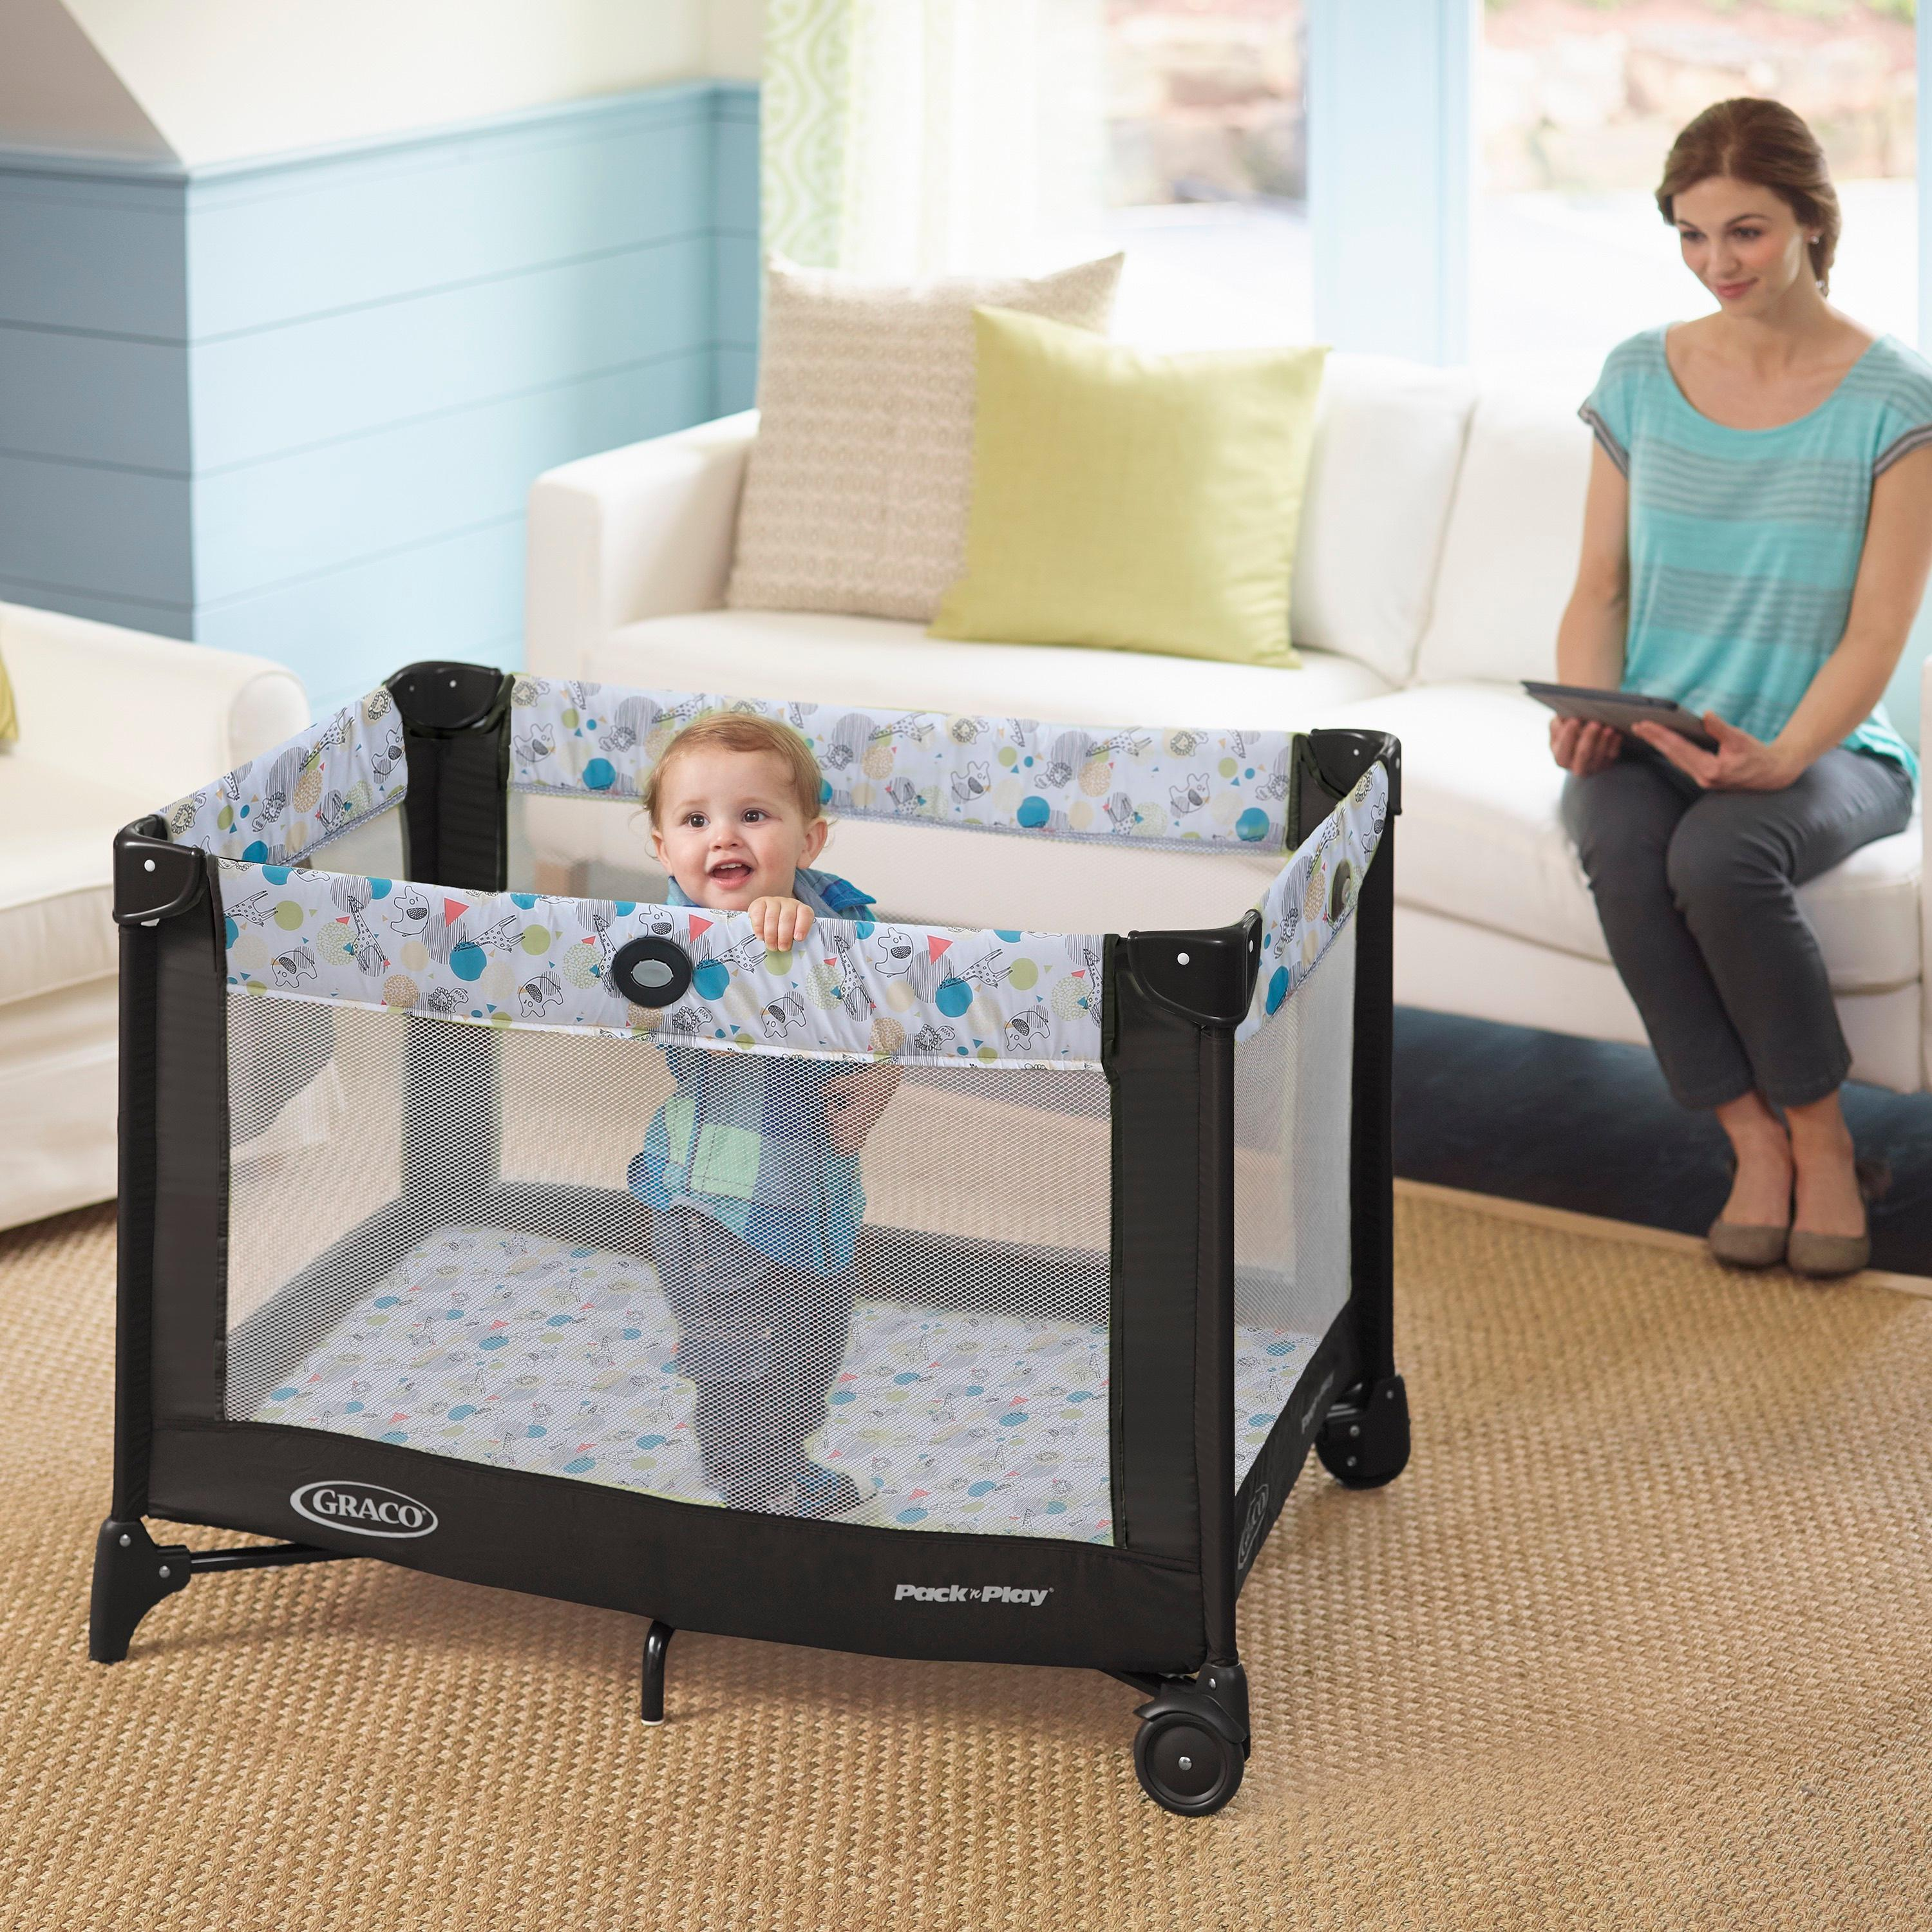 Baby crib playard - From The Manufacturer